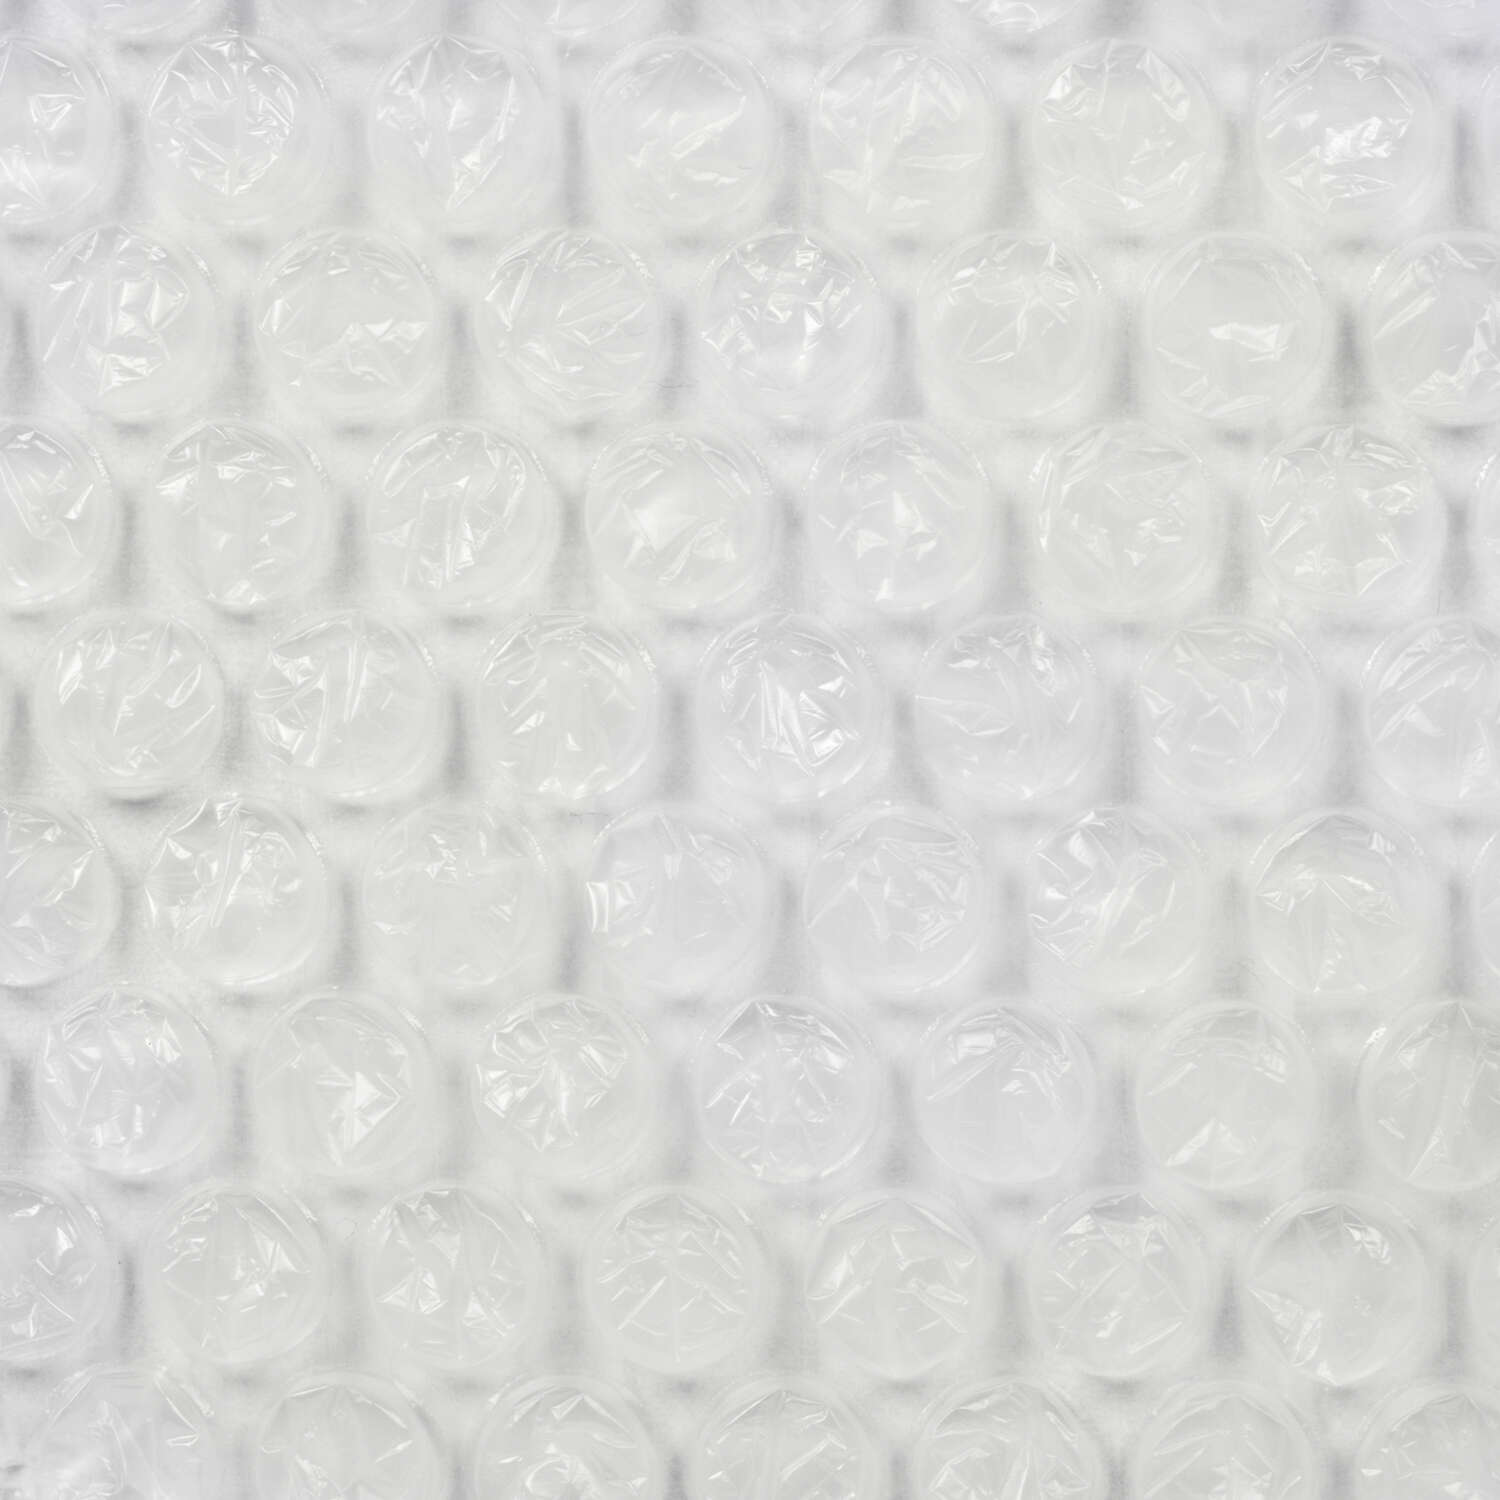 Duck Brand  12 in. W x 30 ft. L Bubble Wrap